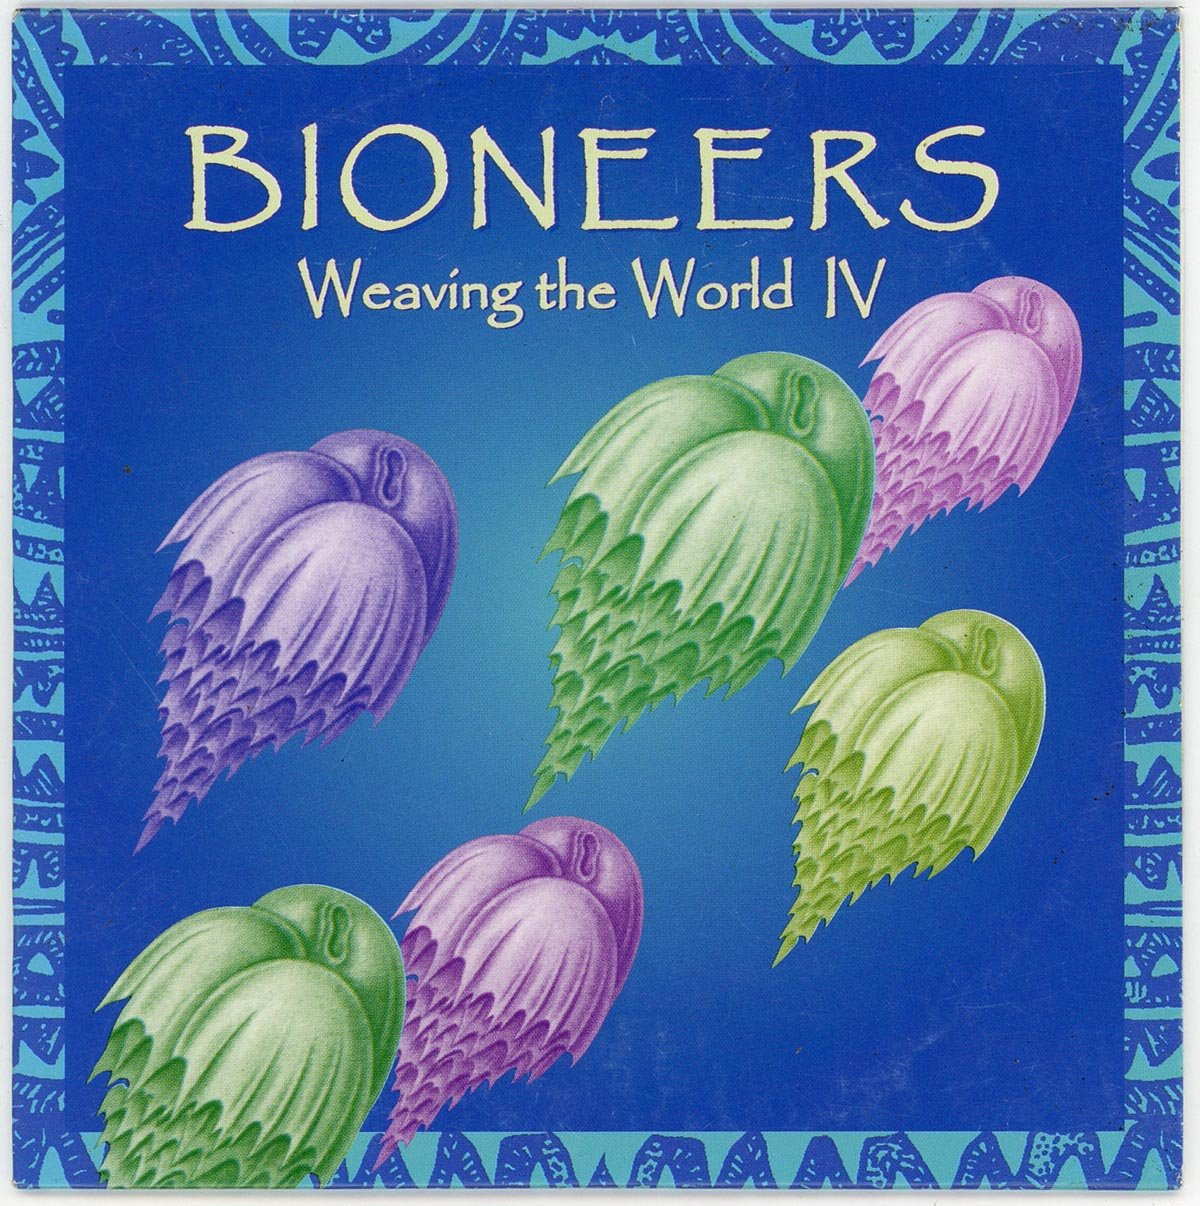 Bioneers; Weaving the World IV; Voices of the Bioneers